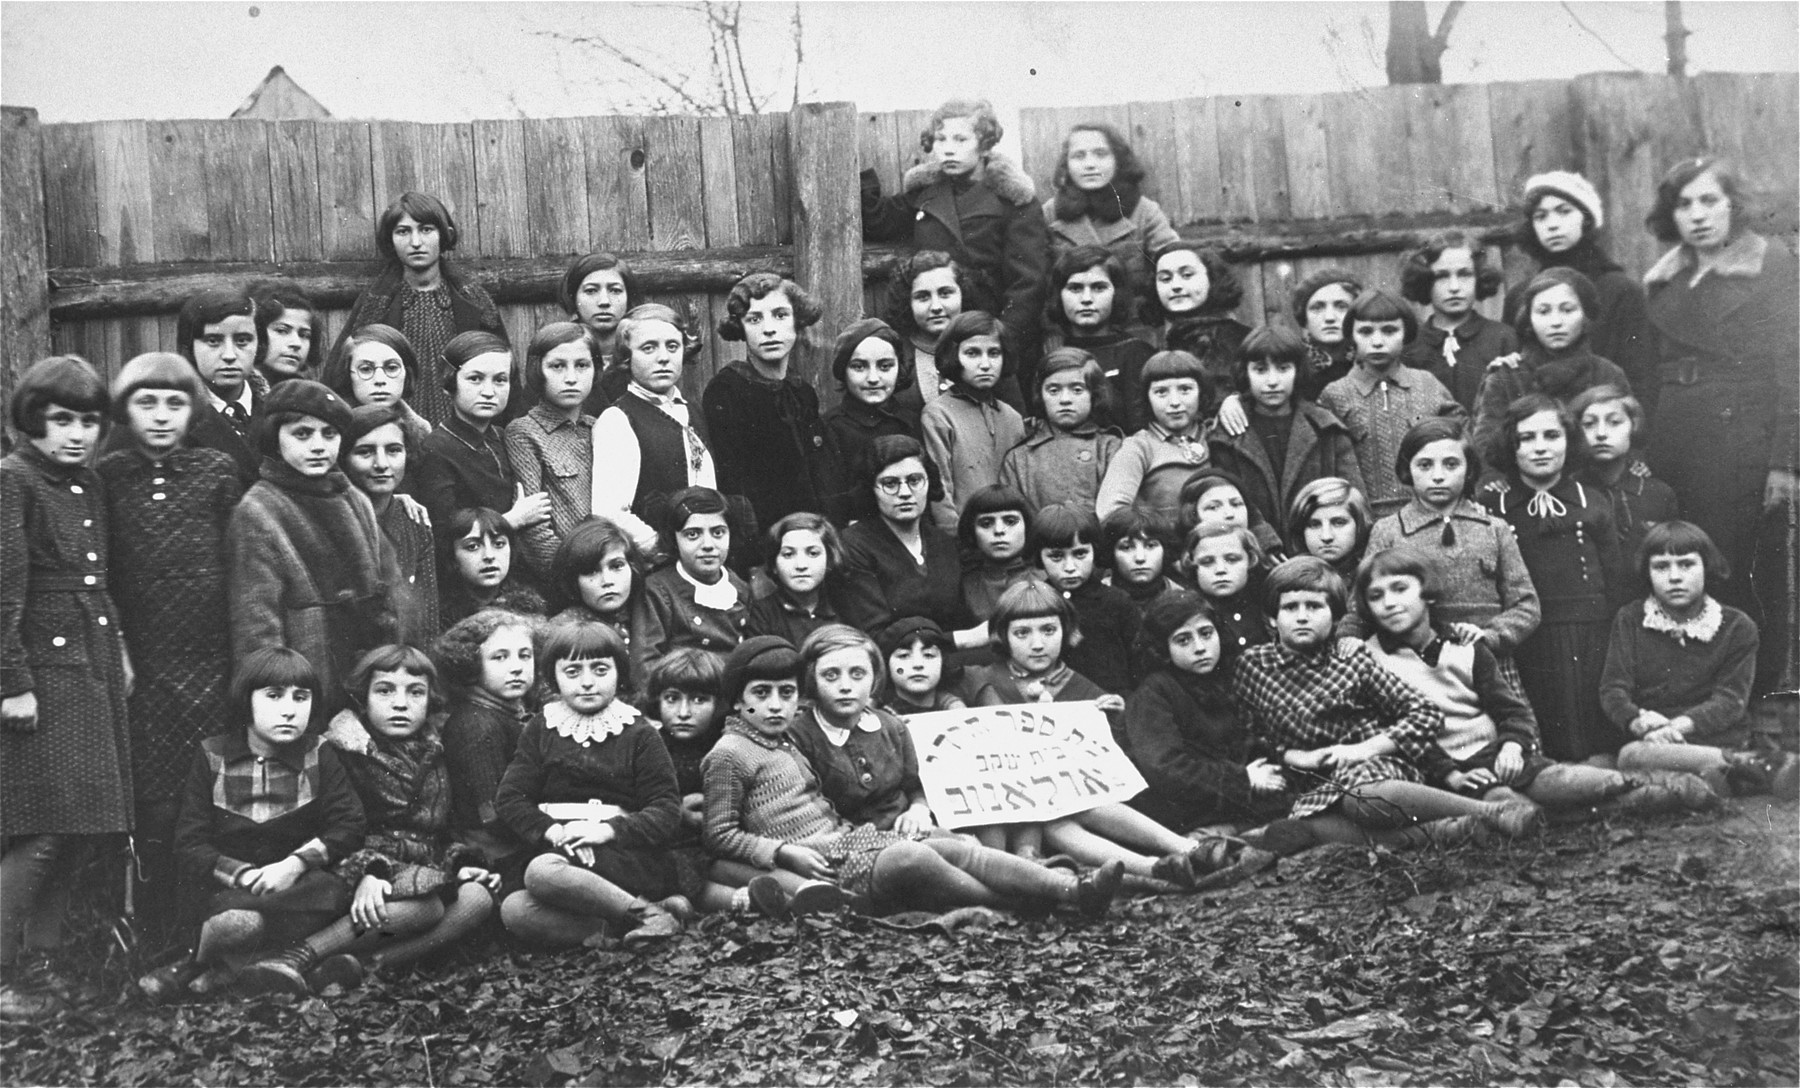 Group portrait of the students at the Beit Yaakov religious school for girls in Ulanow, Poland.    Among those pictured are: Sabina Loew (wearing a fur collar coat in the back row), her sister Udl (wearing glasses in the third row from the front, fifth from the left).  The teacher is Henche Westereich.  Eleven of the pupils survived the war.